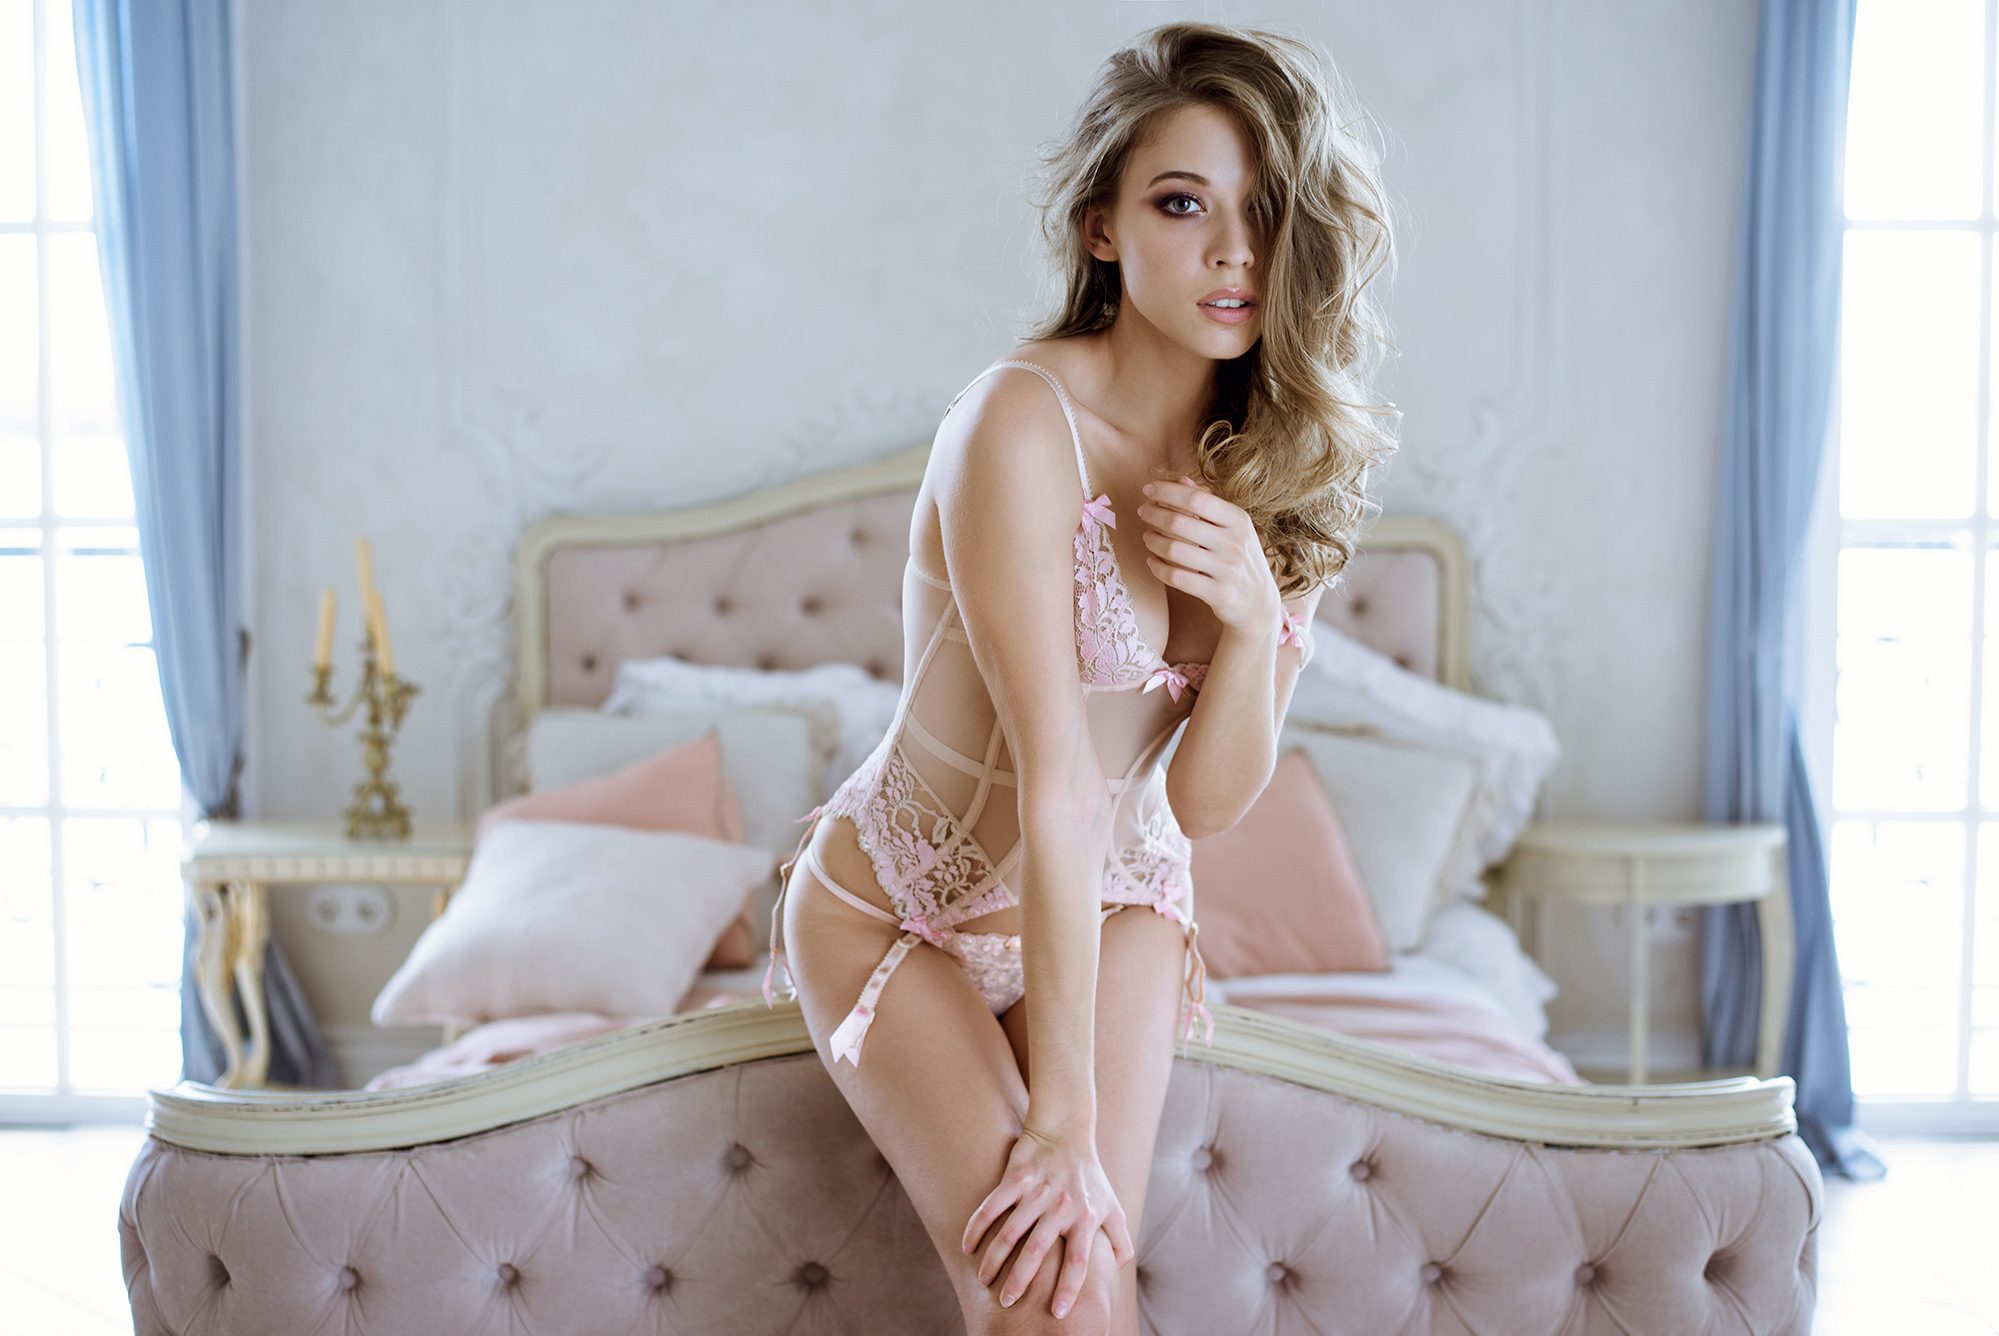 beautiful sexy lady in pink lingerie